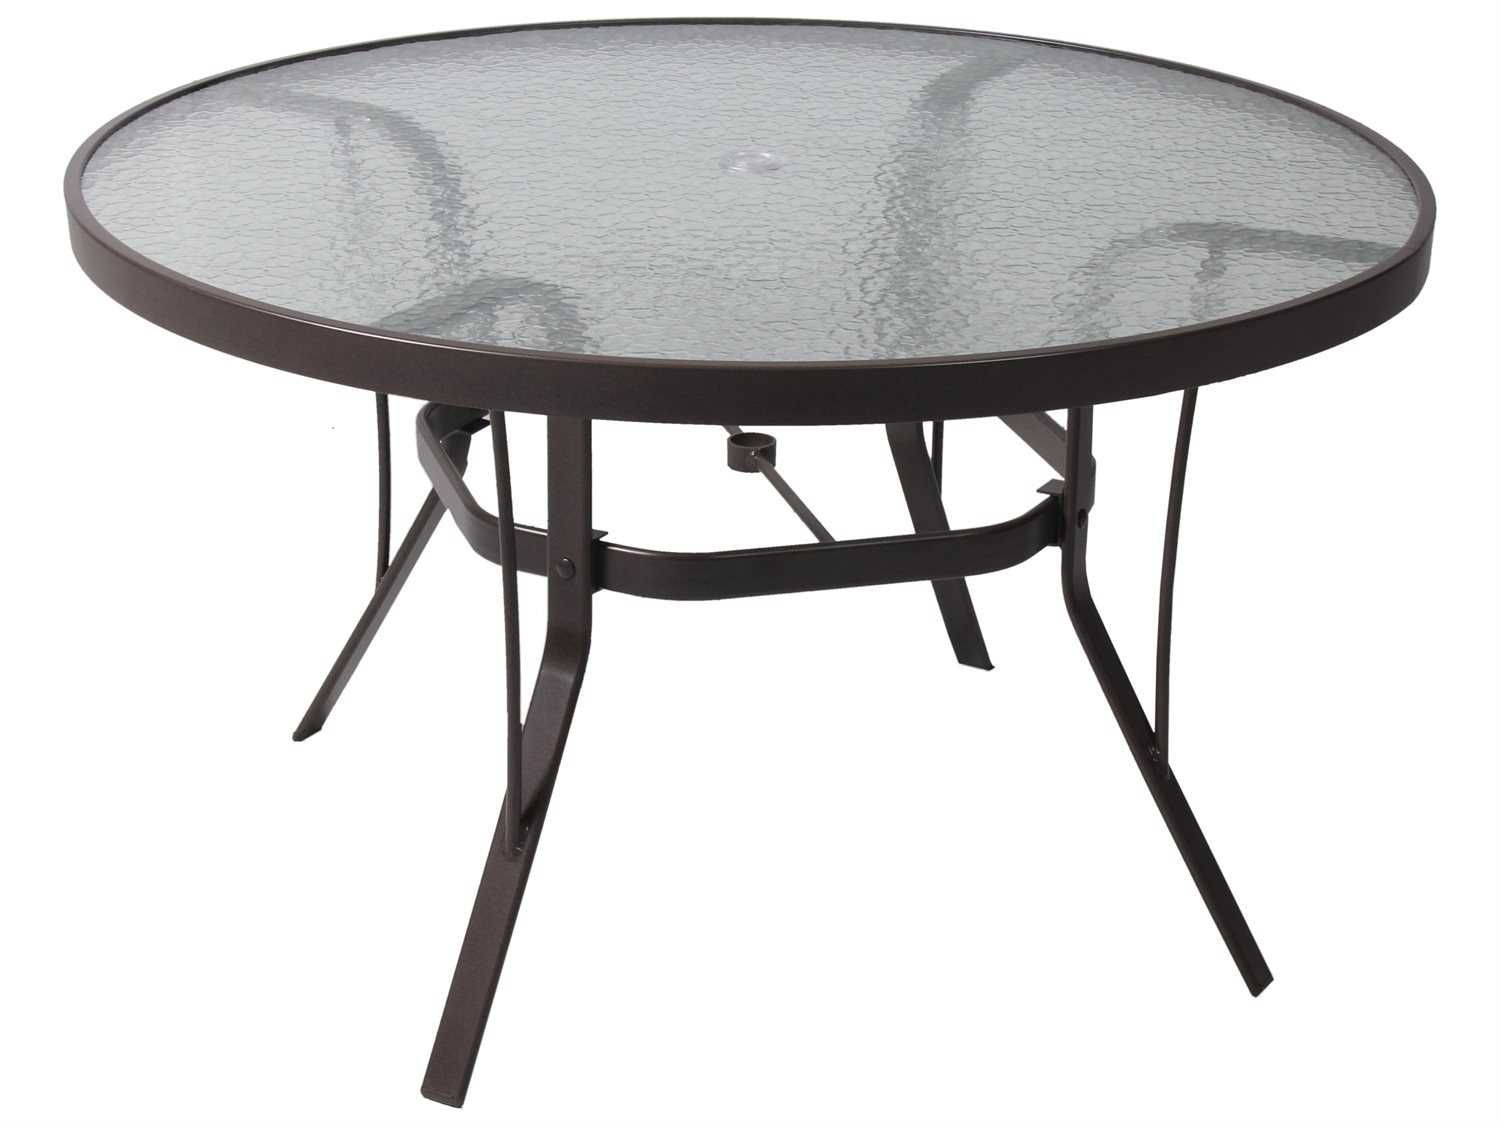 36 Round Glass Top Patio Table Glass Round Dining Table Glass